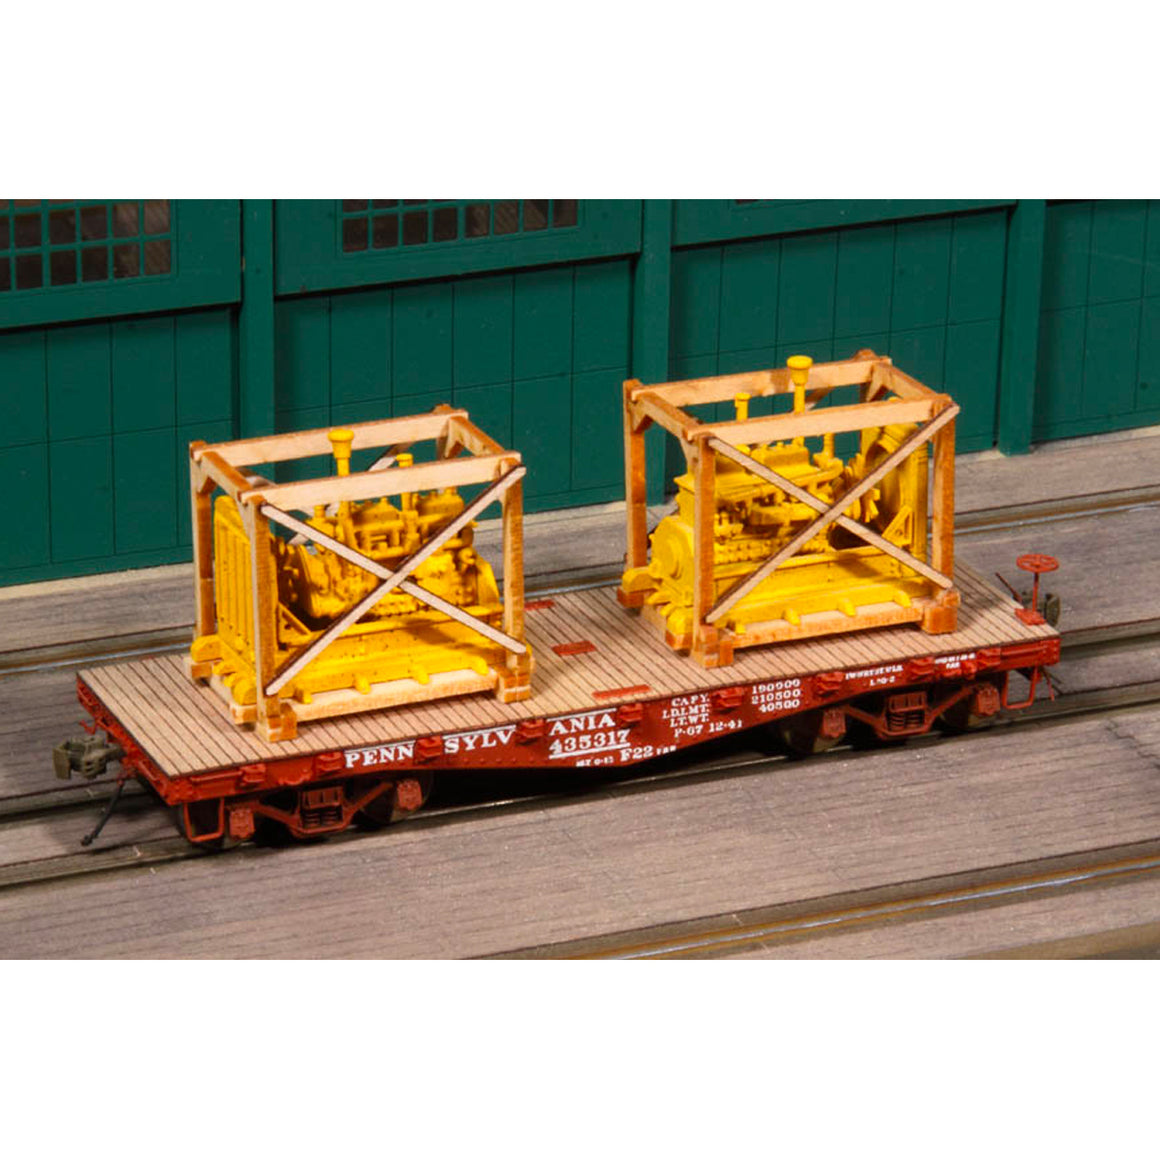 HO Scale: Crated Diesel Generator Freight Car Loads - Kit